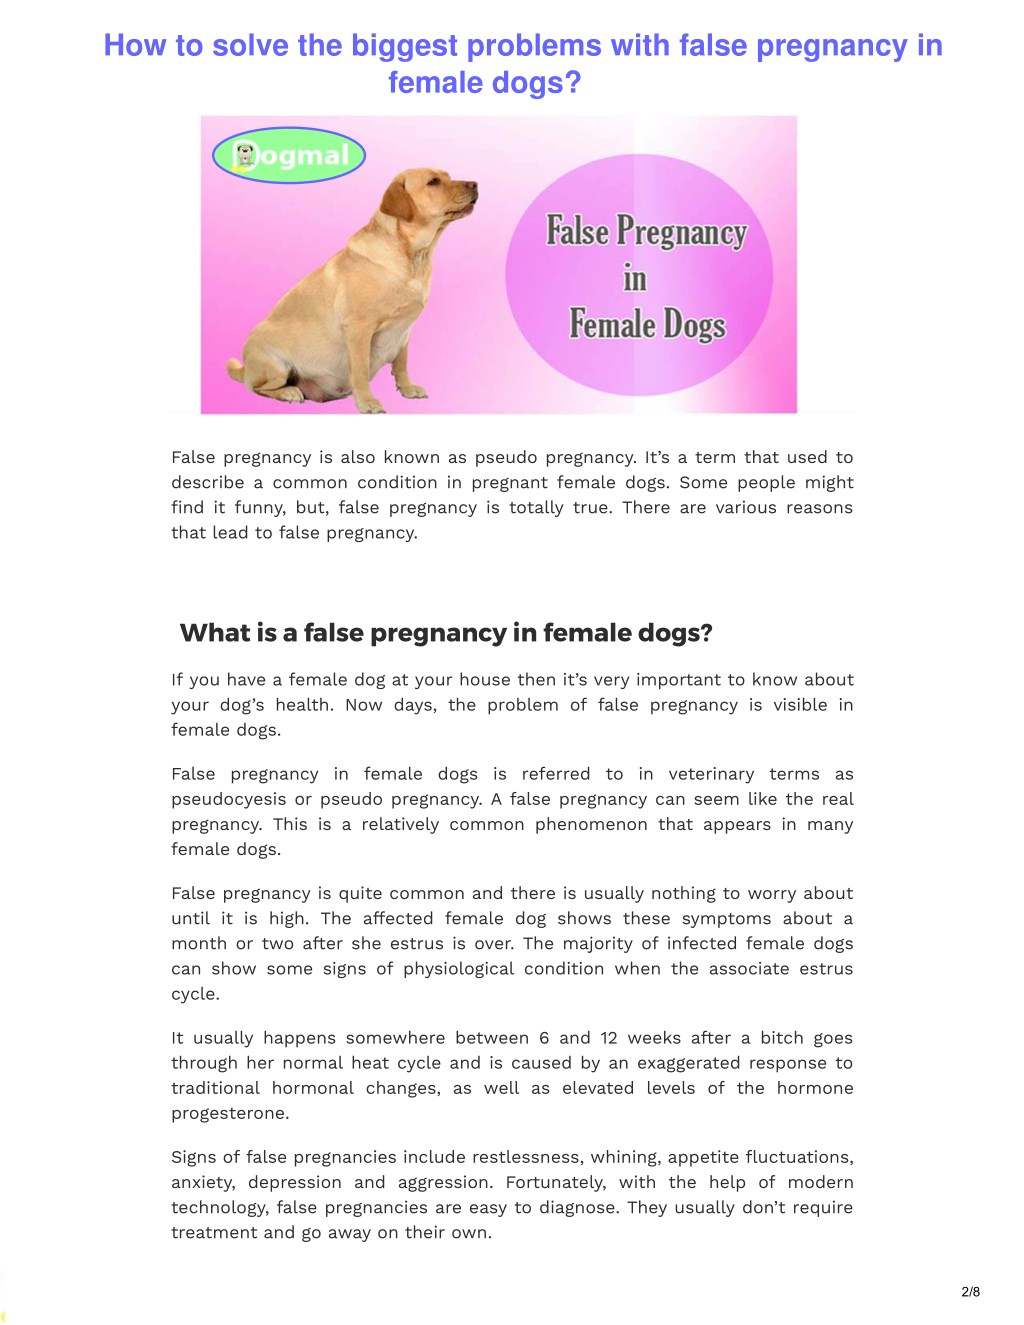 PPT - How to solve the biggest problems with false pregnancy